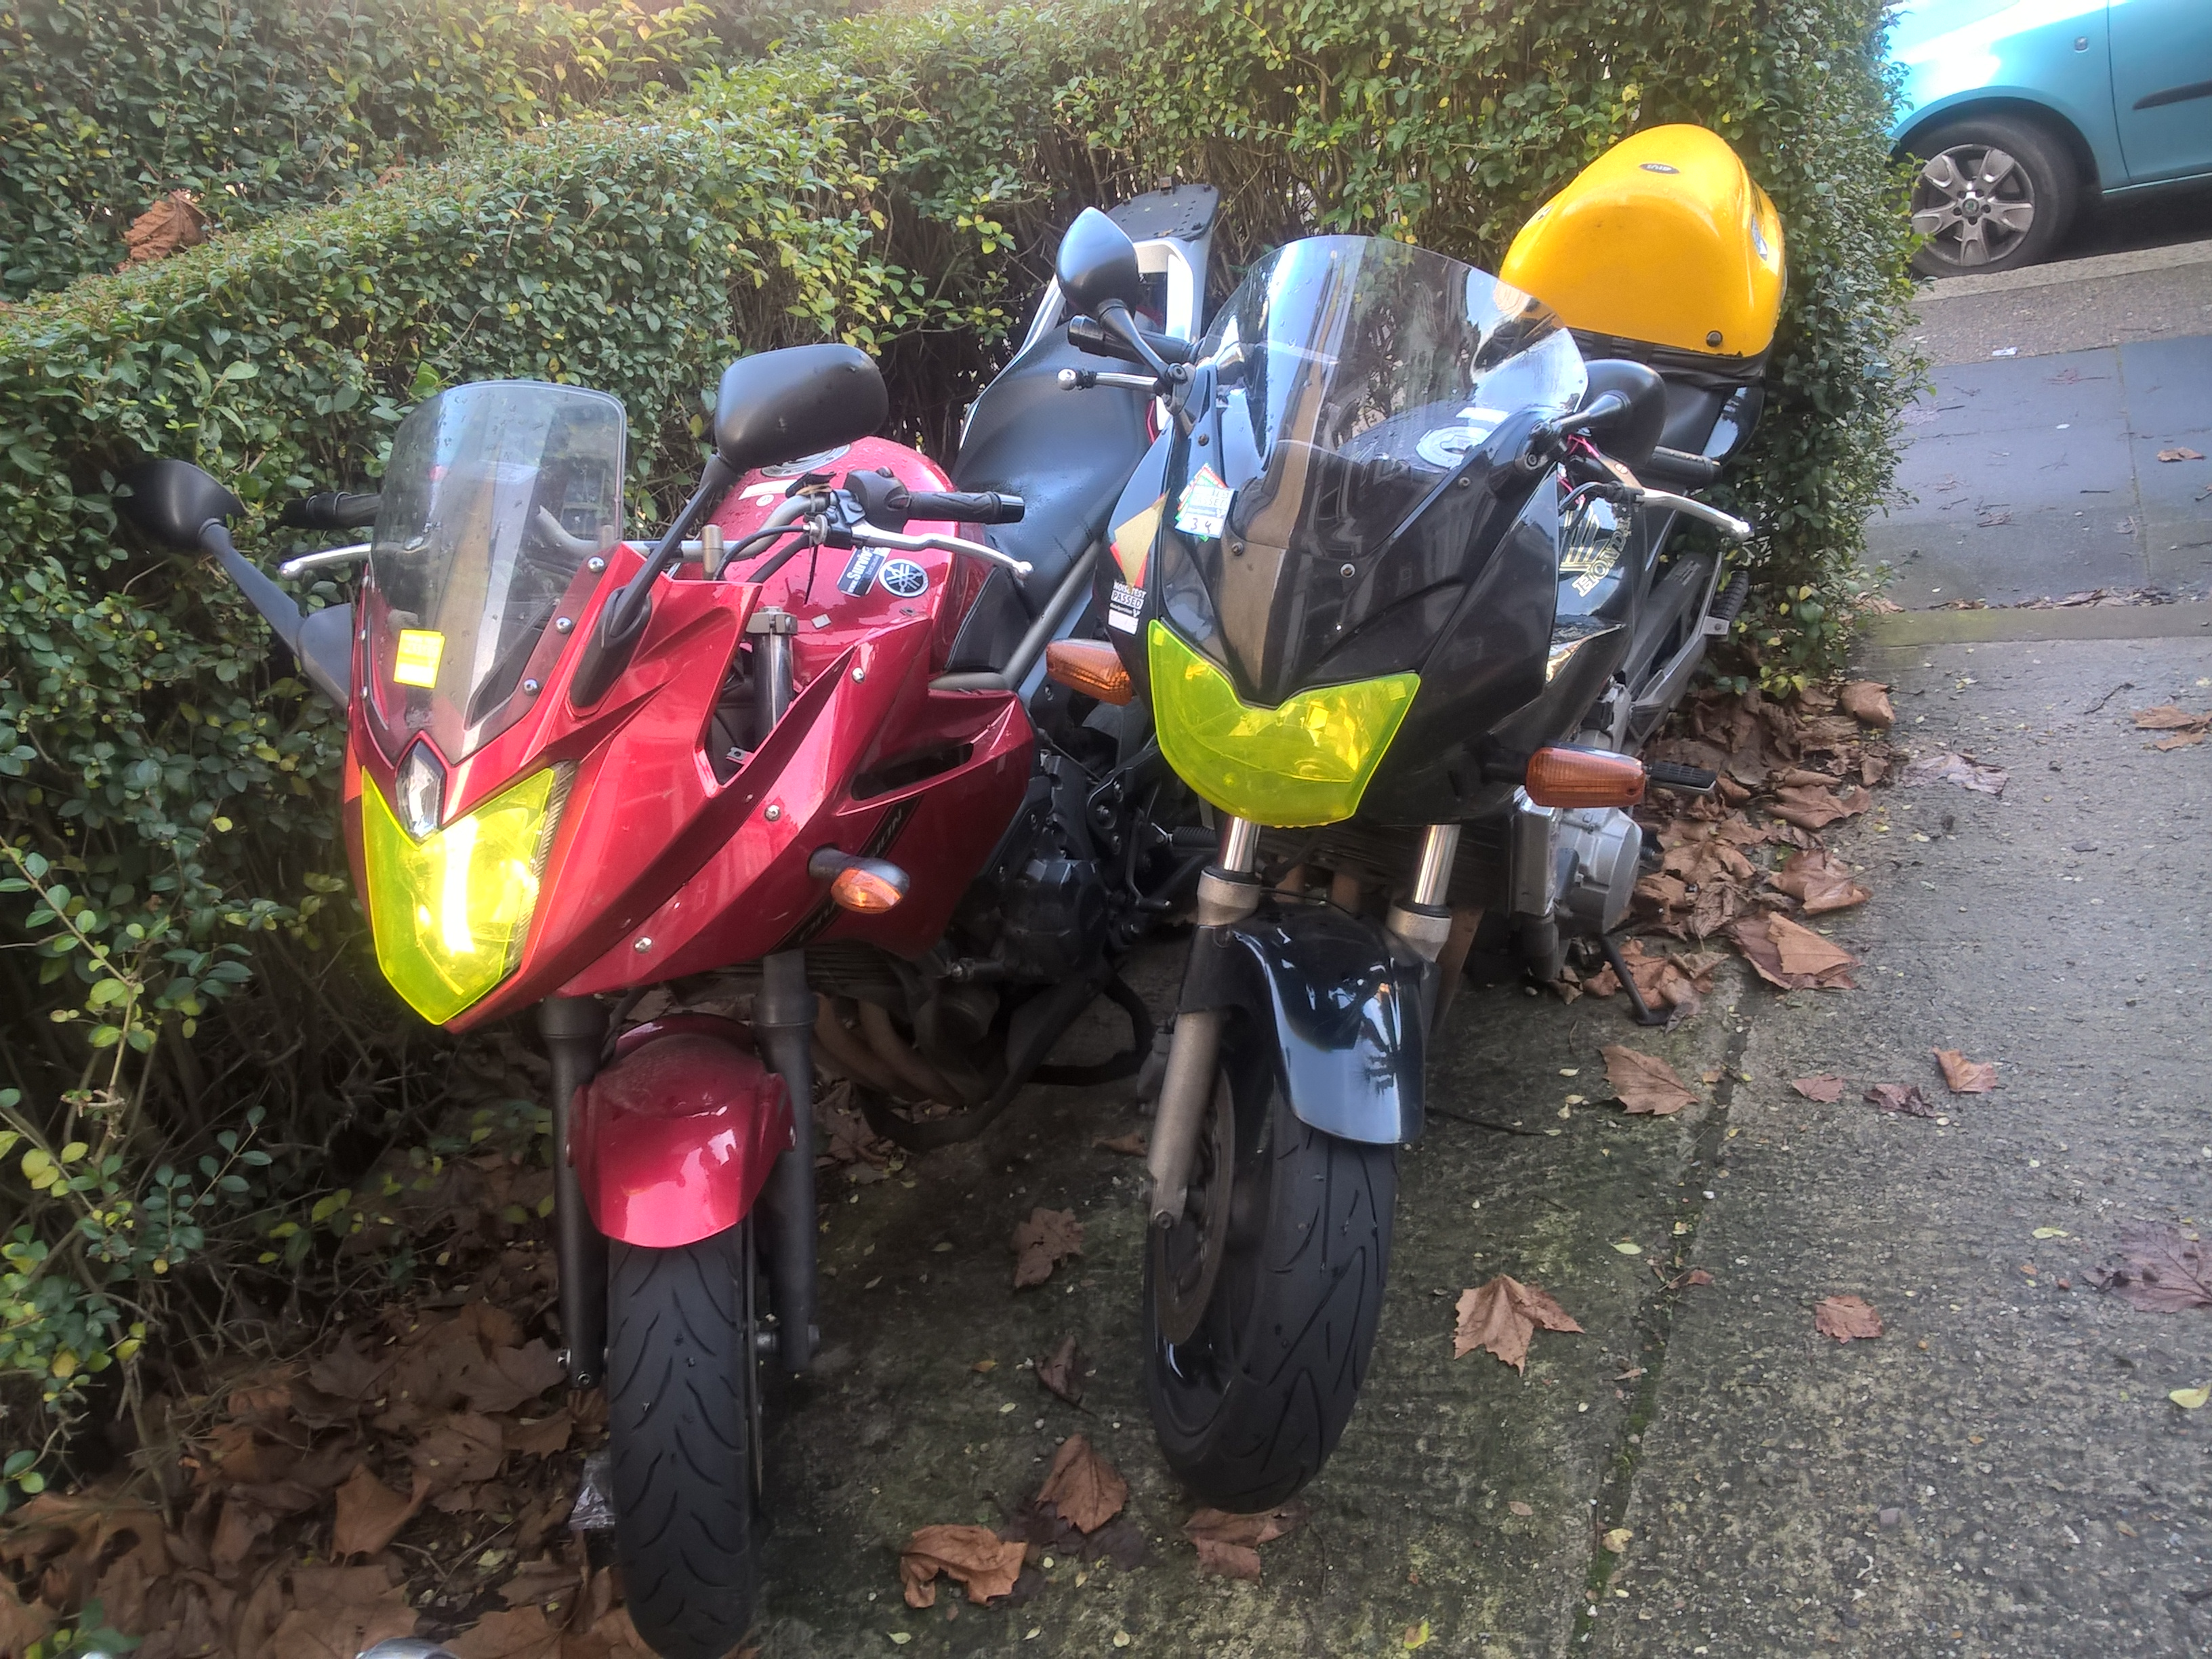 Motorcycles with headlight covers